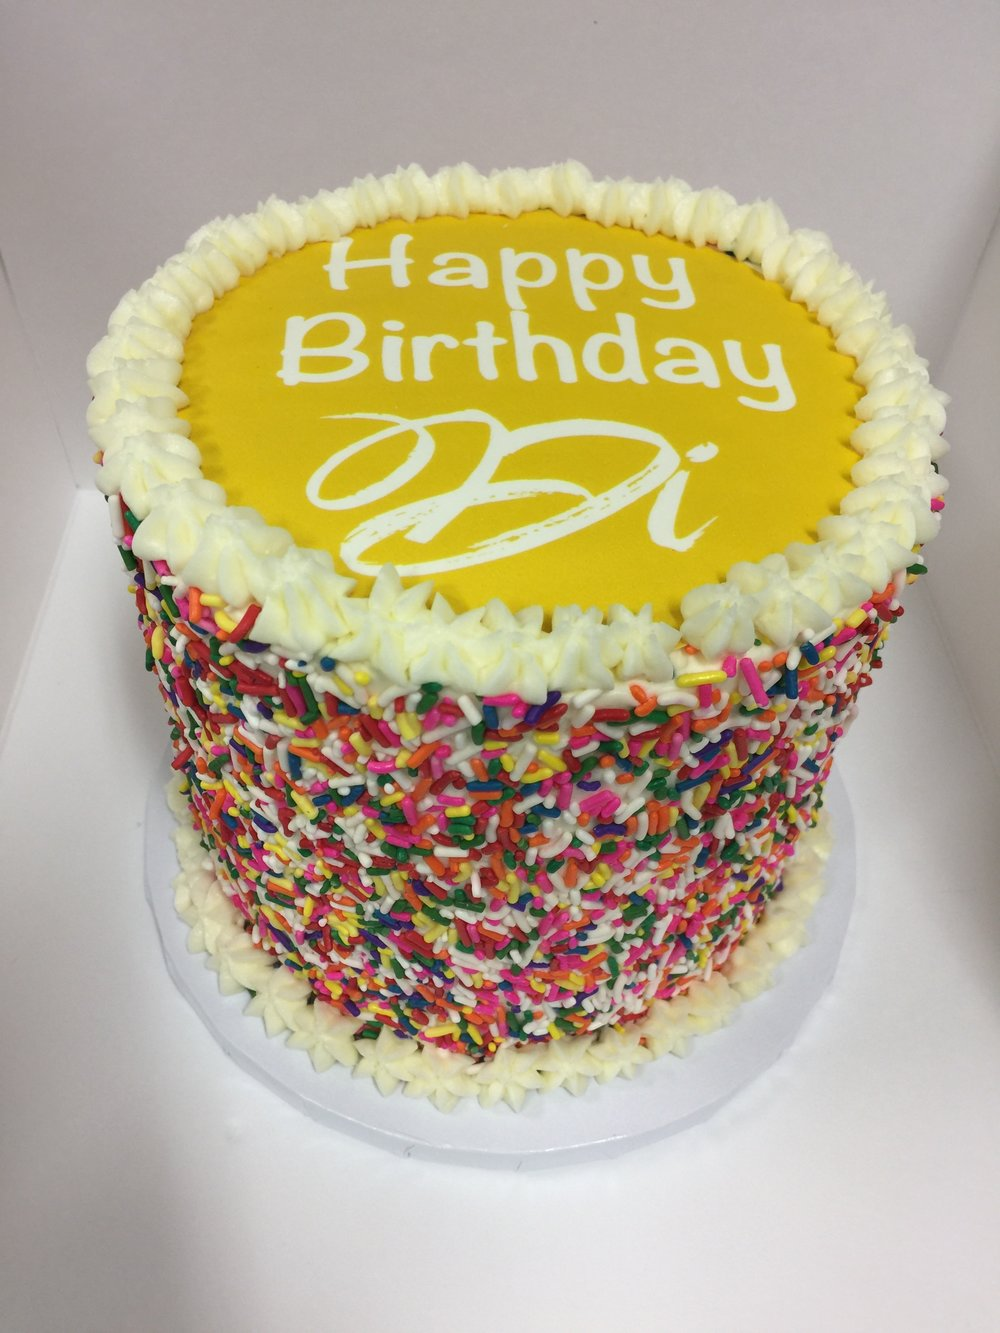 Birthday Cake - INCLUDES PERSONALIZED  MESSAGE6